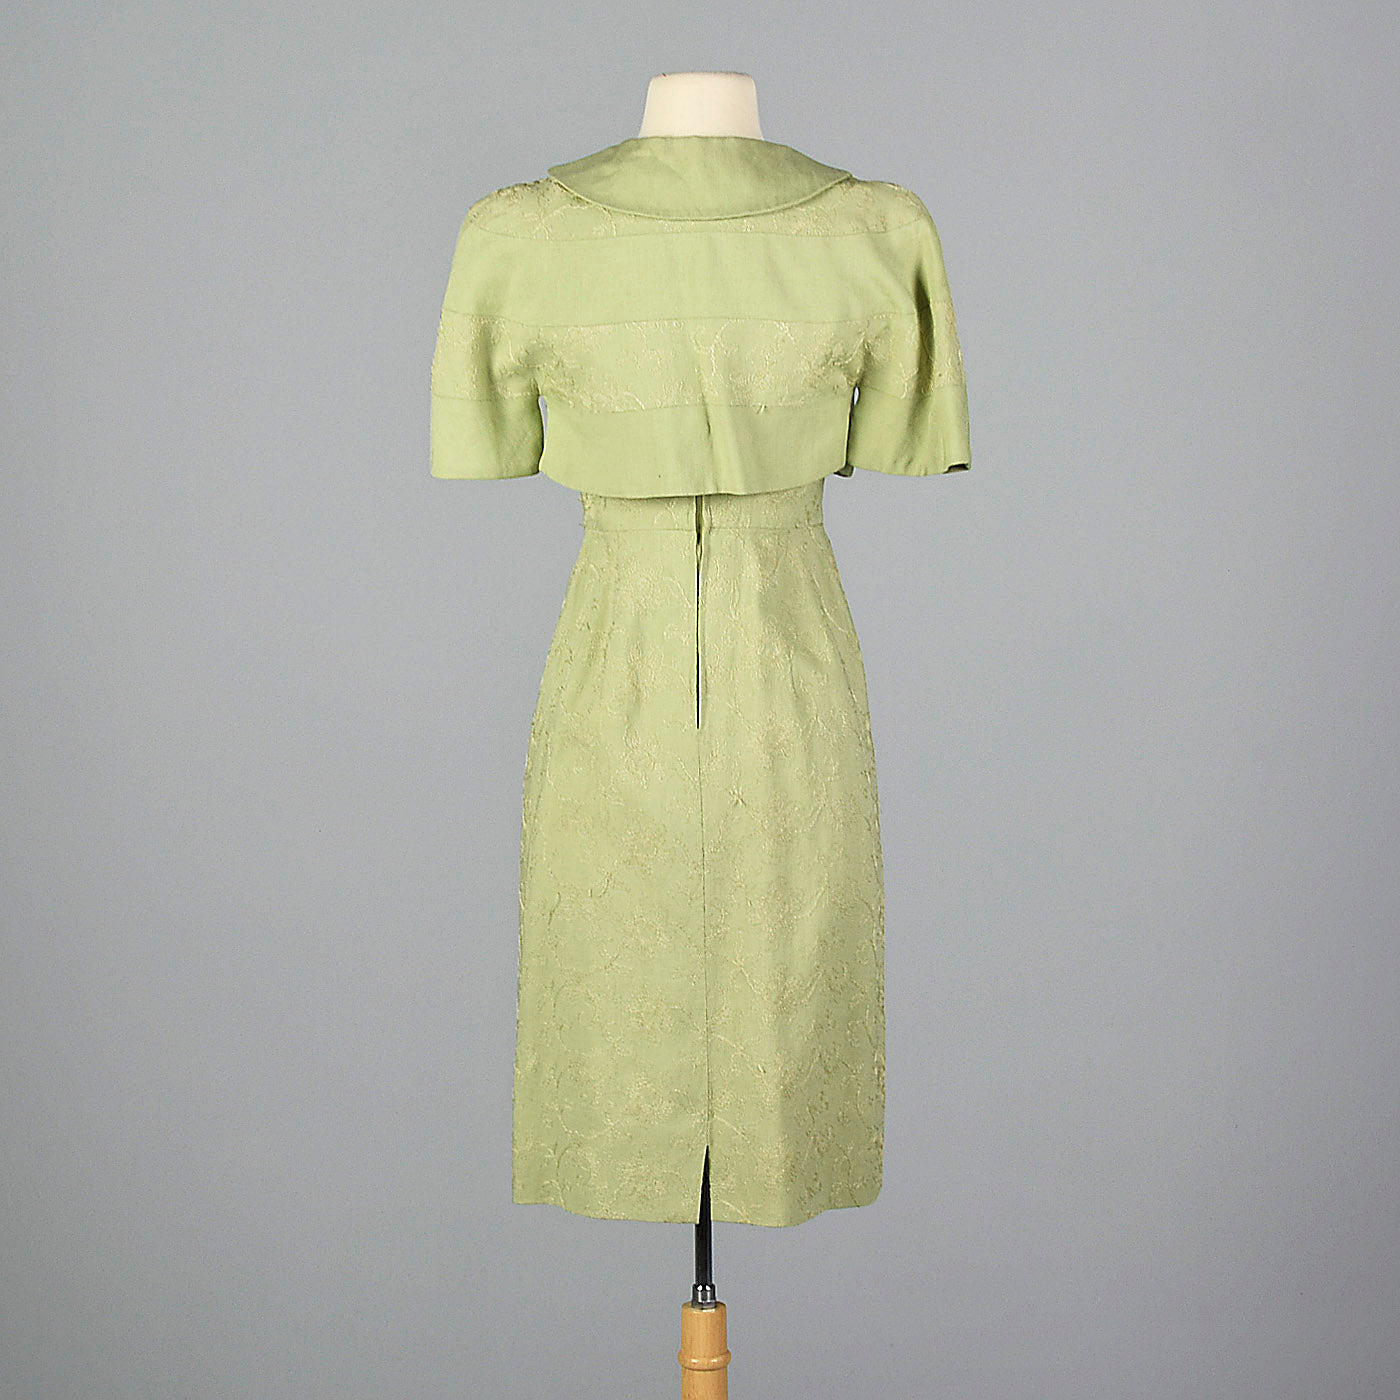 1950s Green Dress with Matching Jacket